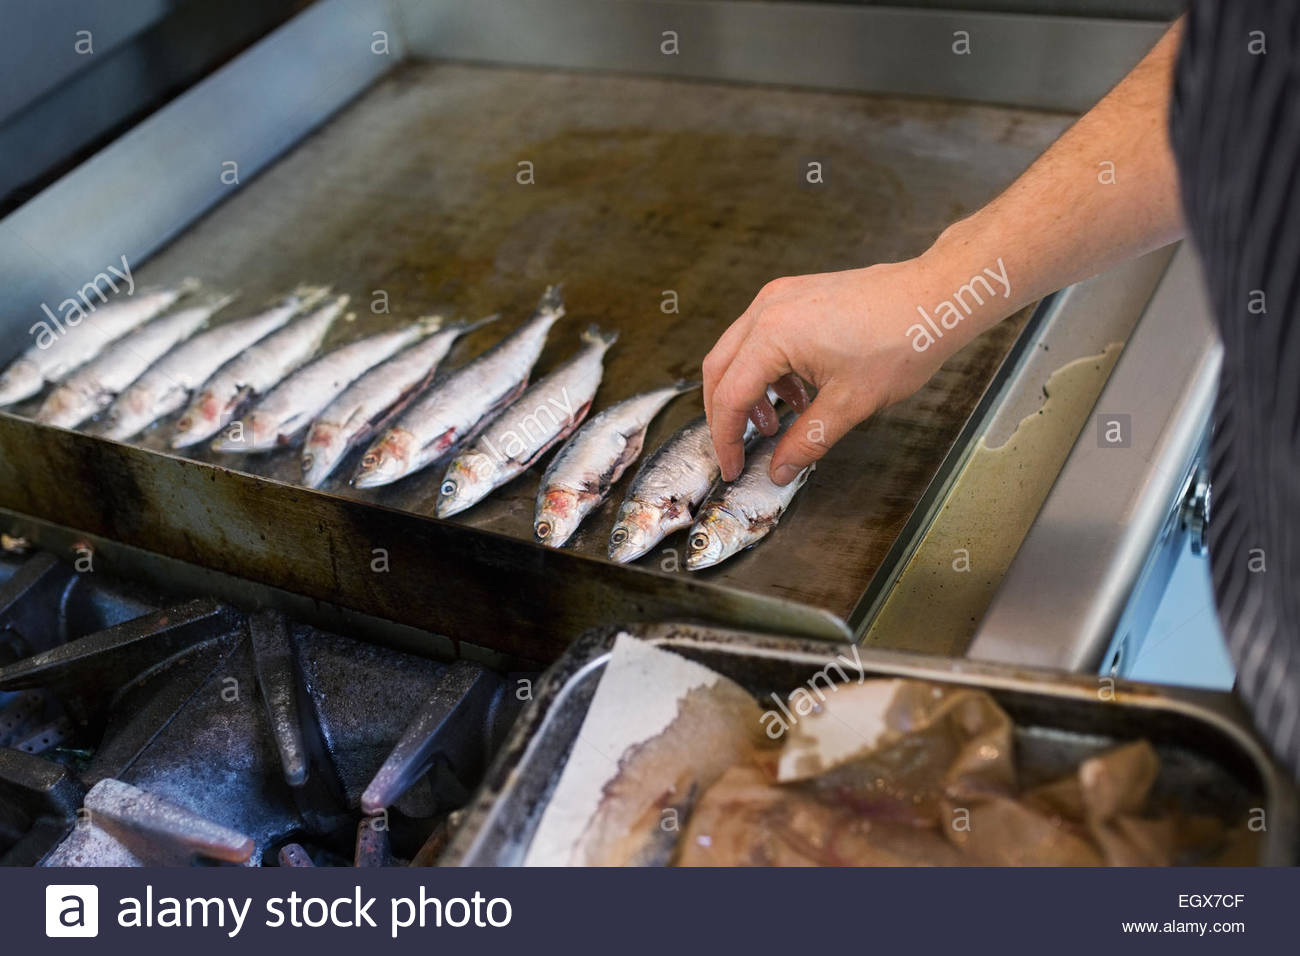 Chef placing small fish on flat top stove - Stock Image